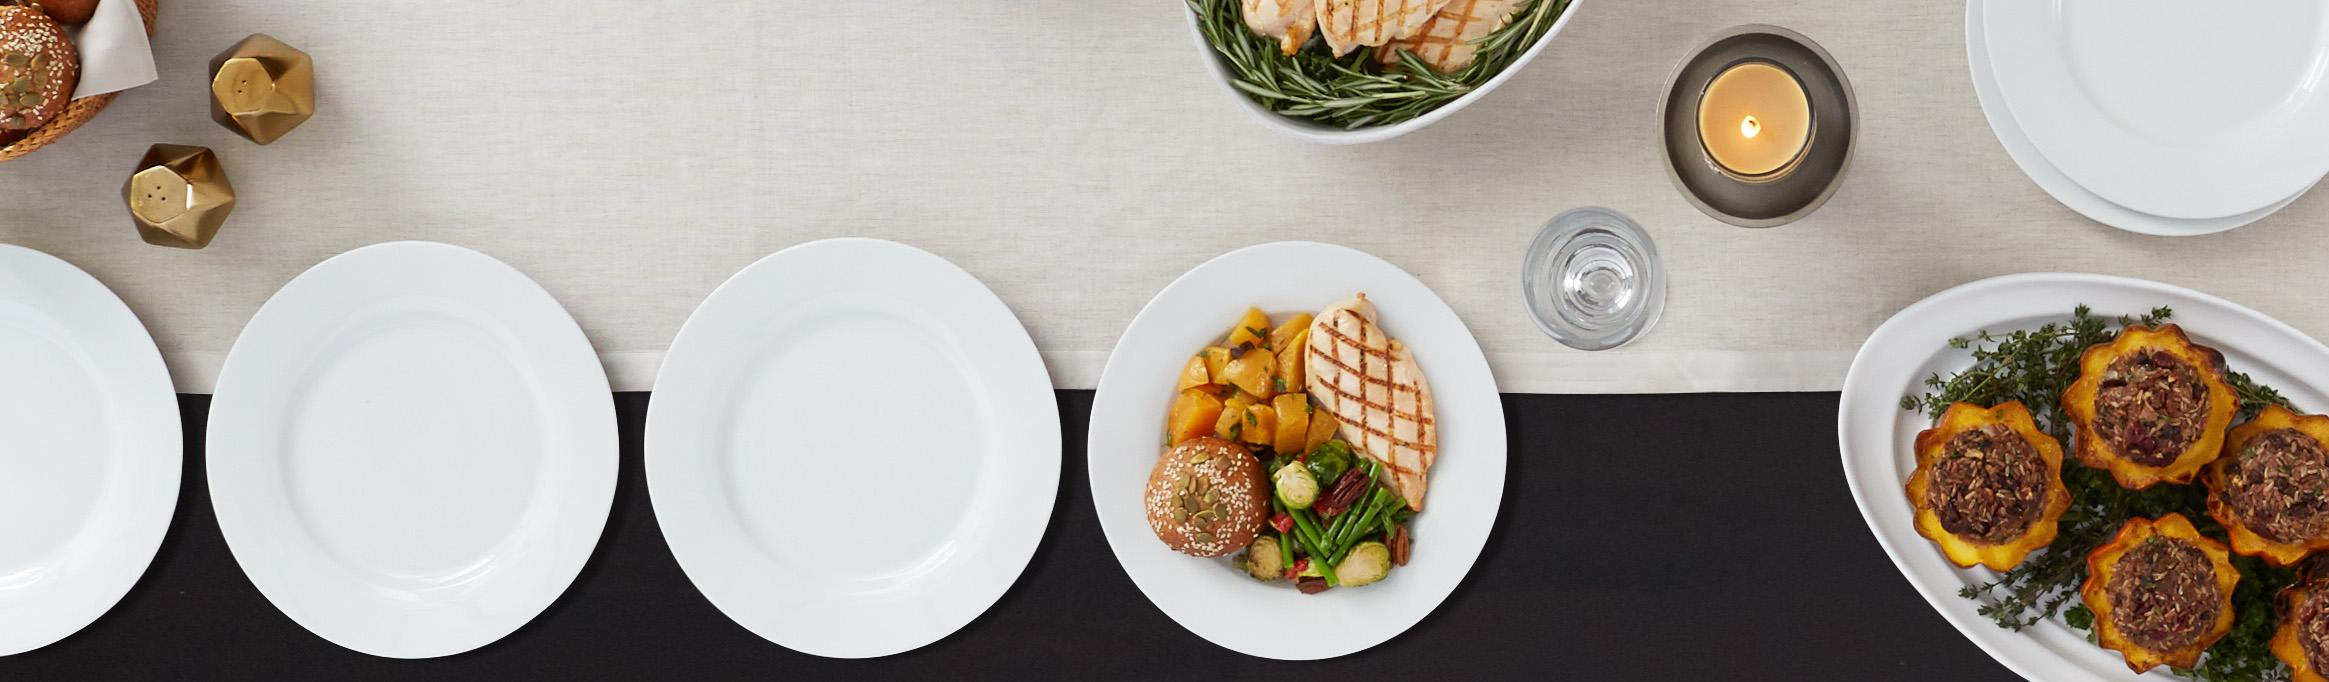 AmazonBasics 6-Piece Dinner Plate Set & Amazon.com | AmazonBasics 6-Piece Dinner Plate Set: Dinner Plates